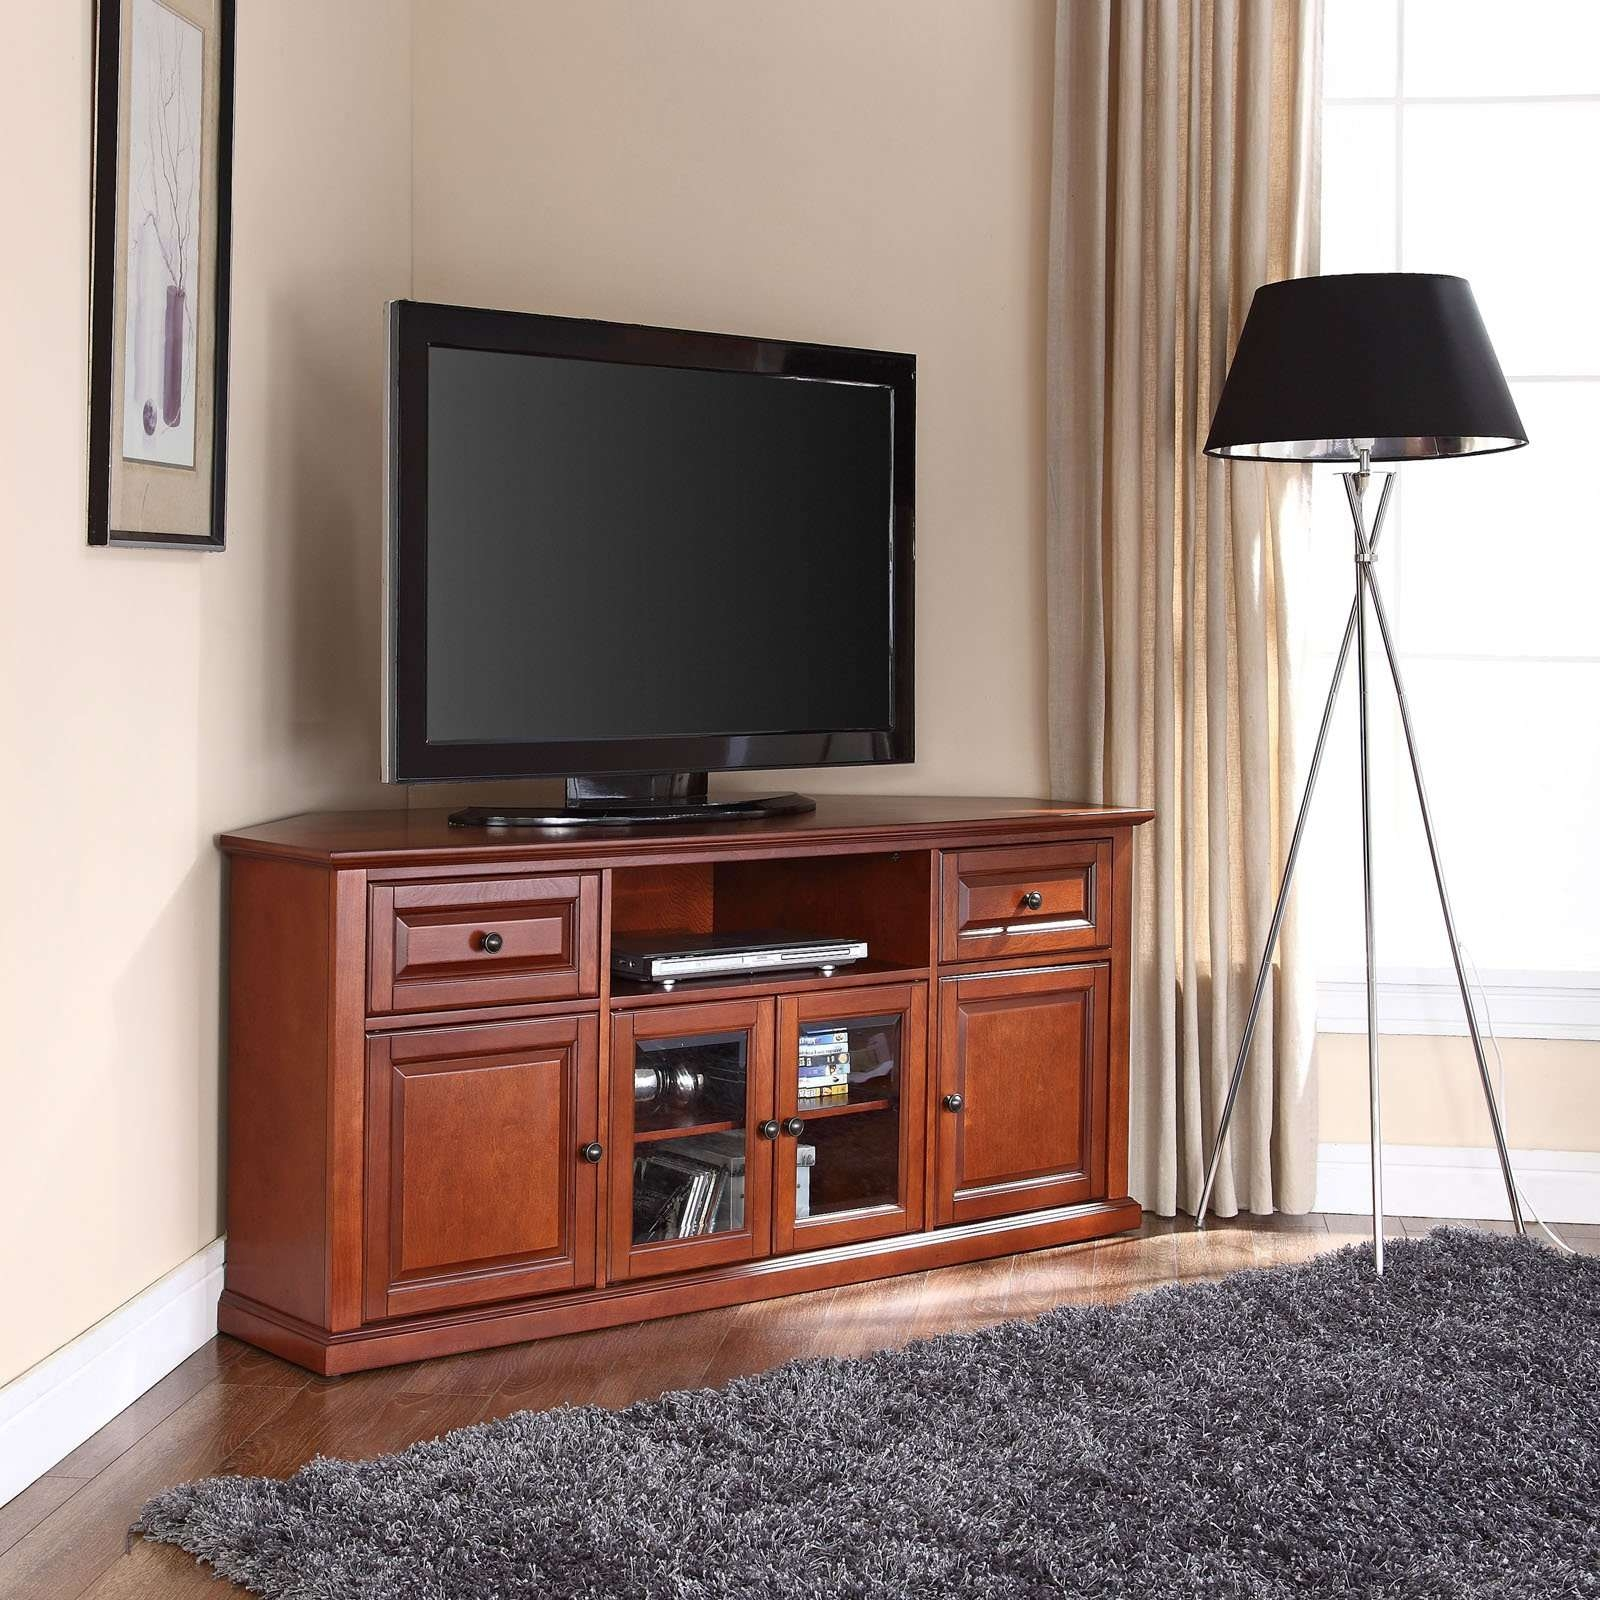 Tv Stand : Tvsc 55 Large Reproduction Tv Cabinet Mahogany Yew Oak Within Mahogany Corner Tv Cabinets (View 6 of 20)